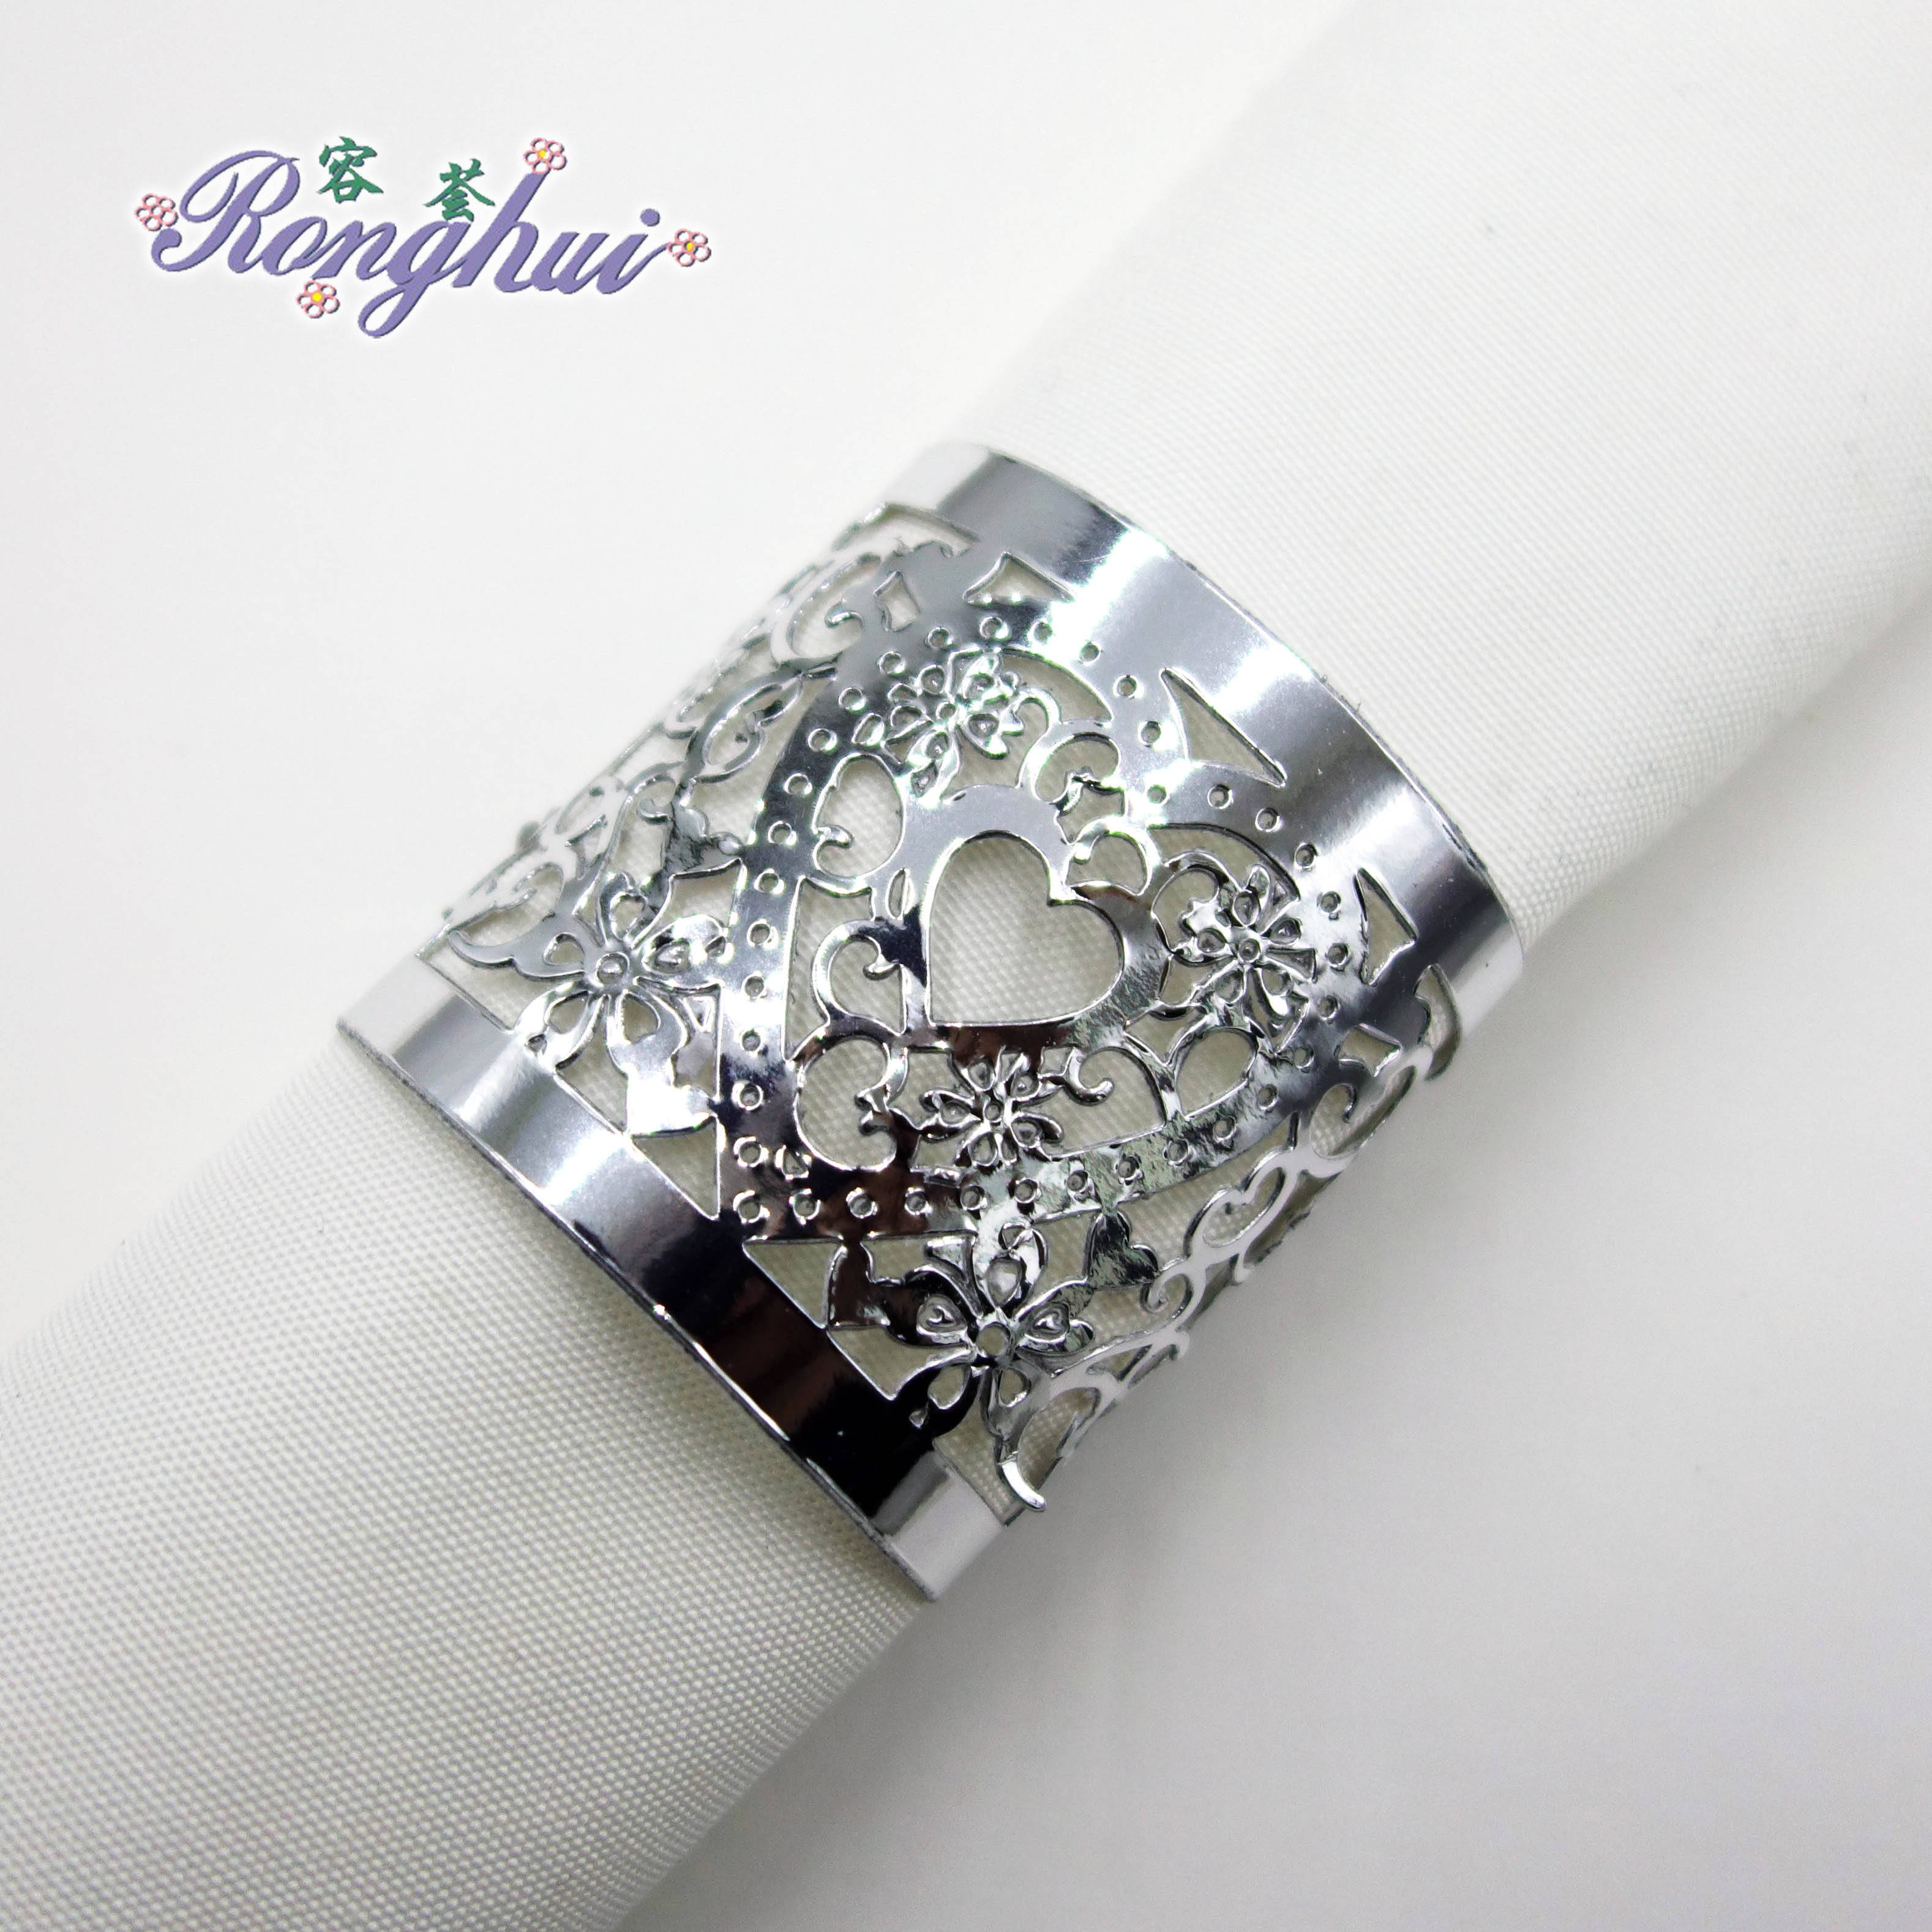 Rhinestone Napkin Rings Butterfly Party Banquet Wedding Linens Inc 6 Pcs Napkin Rings Holders Home Garden